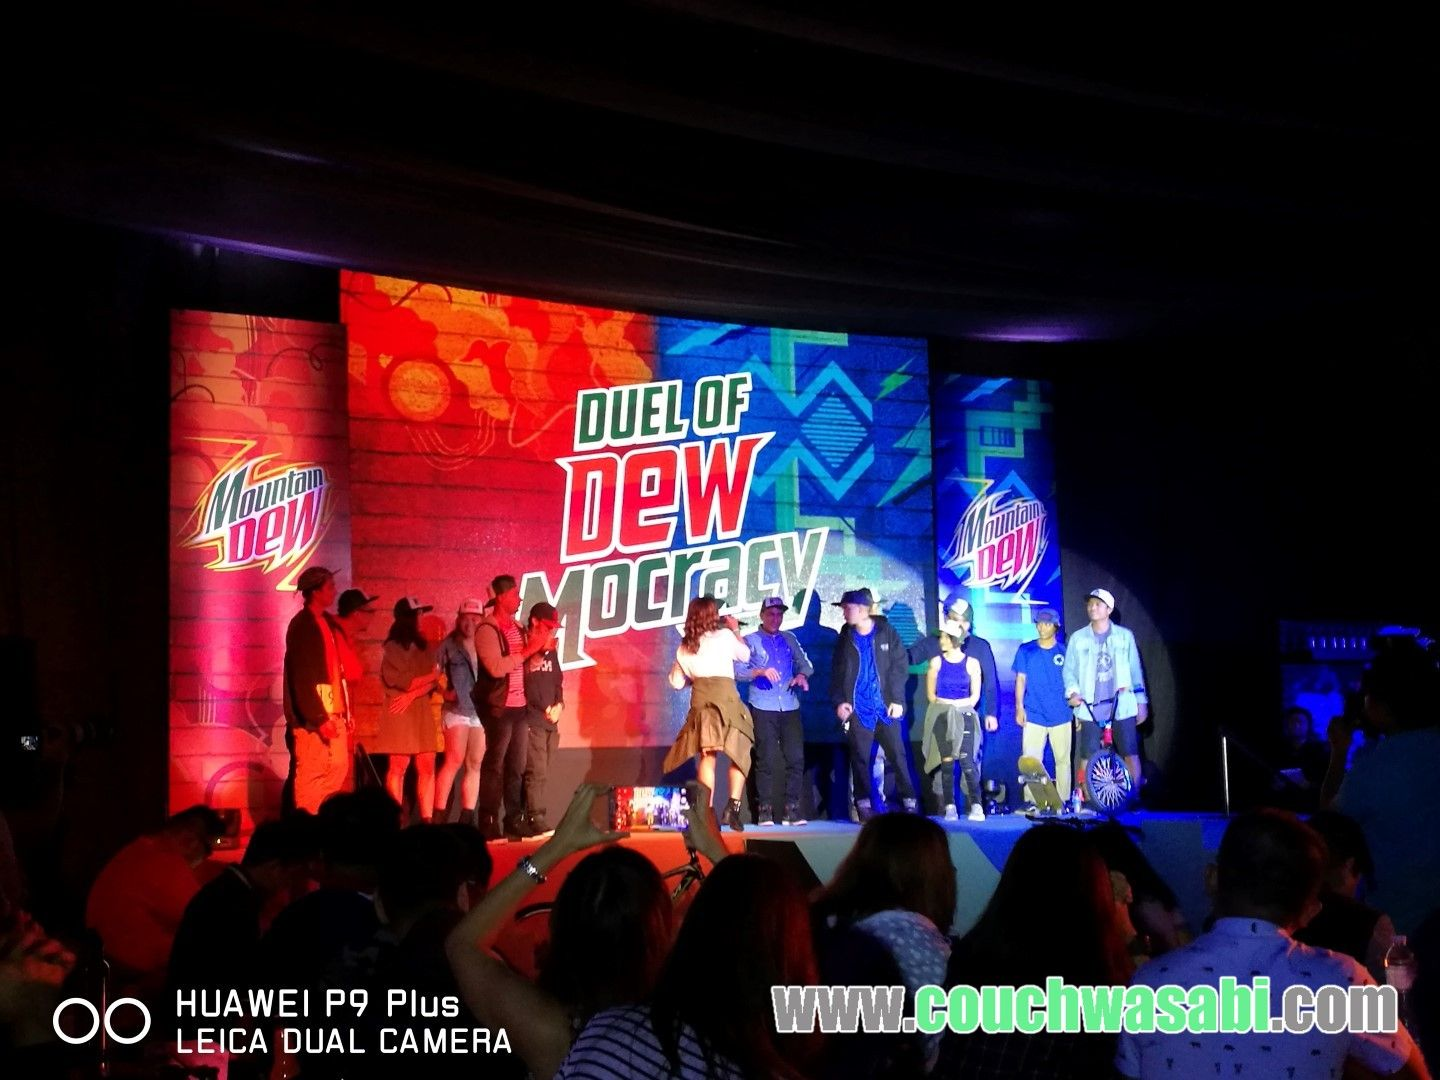 mountain dew vote wisely for dewmocracy couchwasabi asian